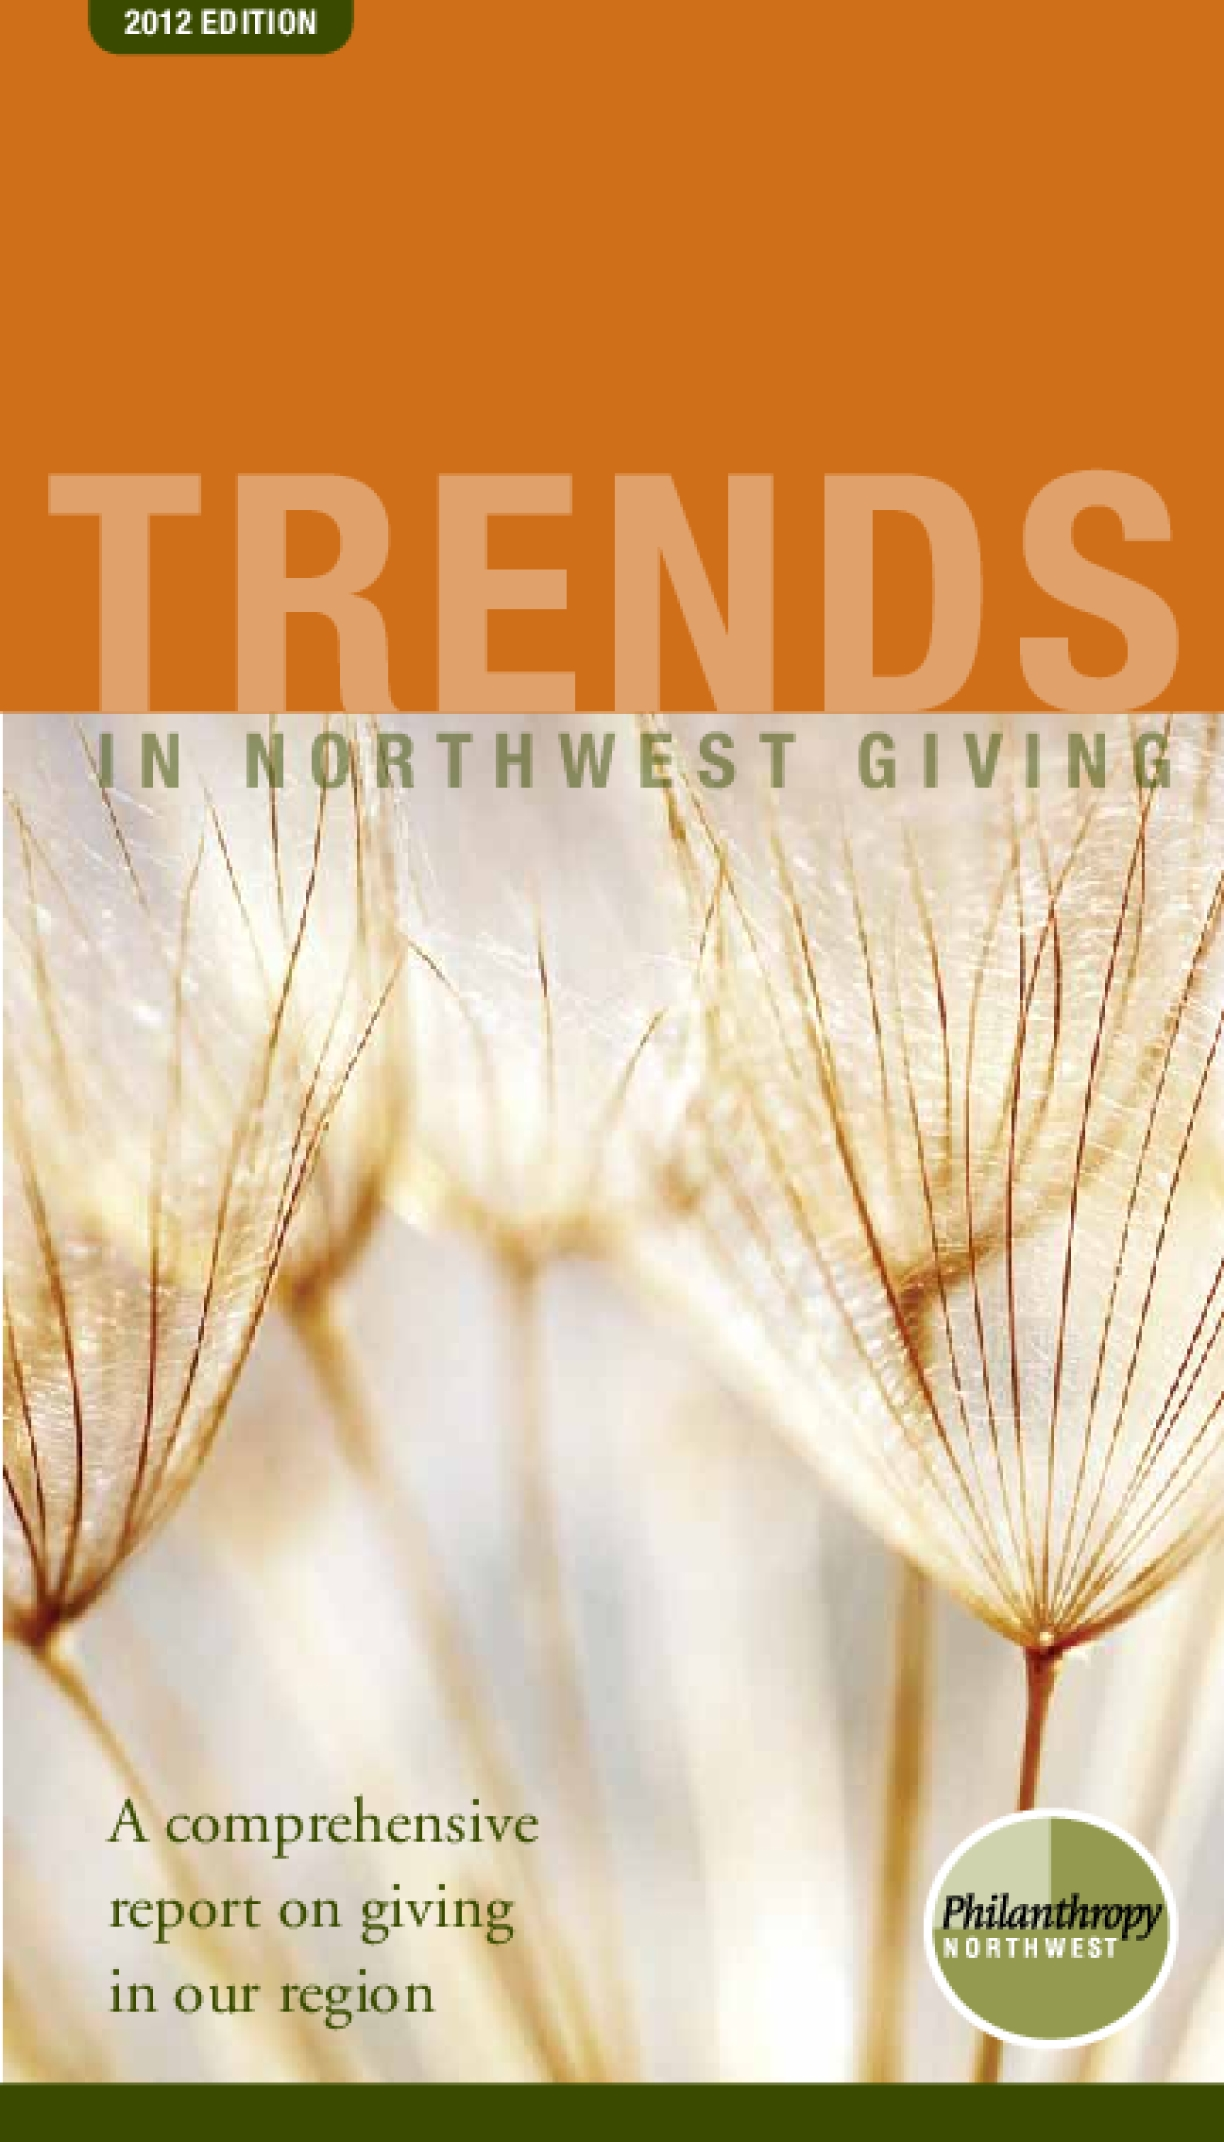 Trends in Northwestern Giving: A comprehensive report on giving in our region